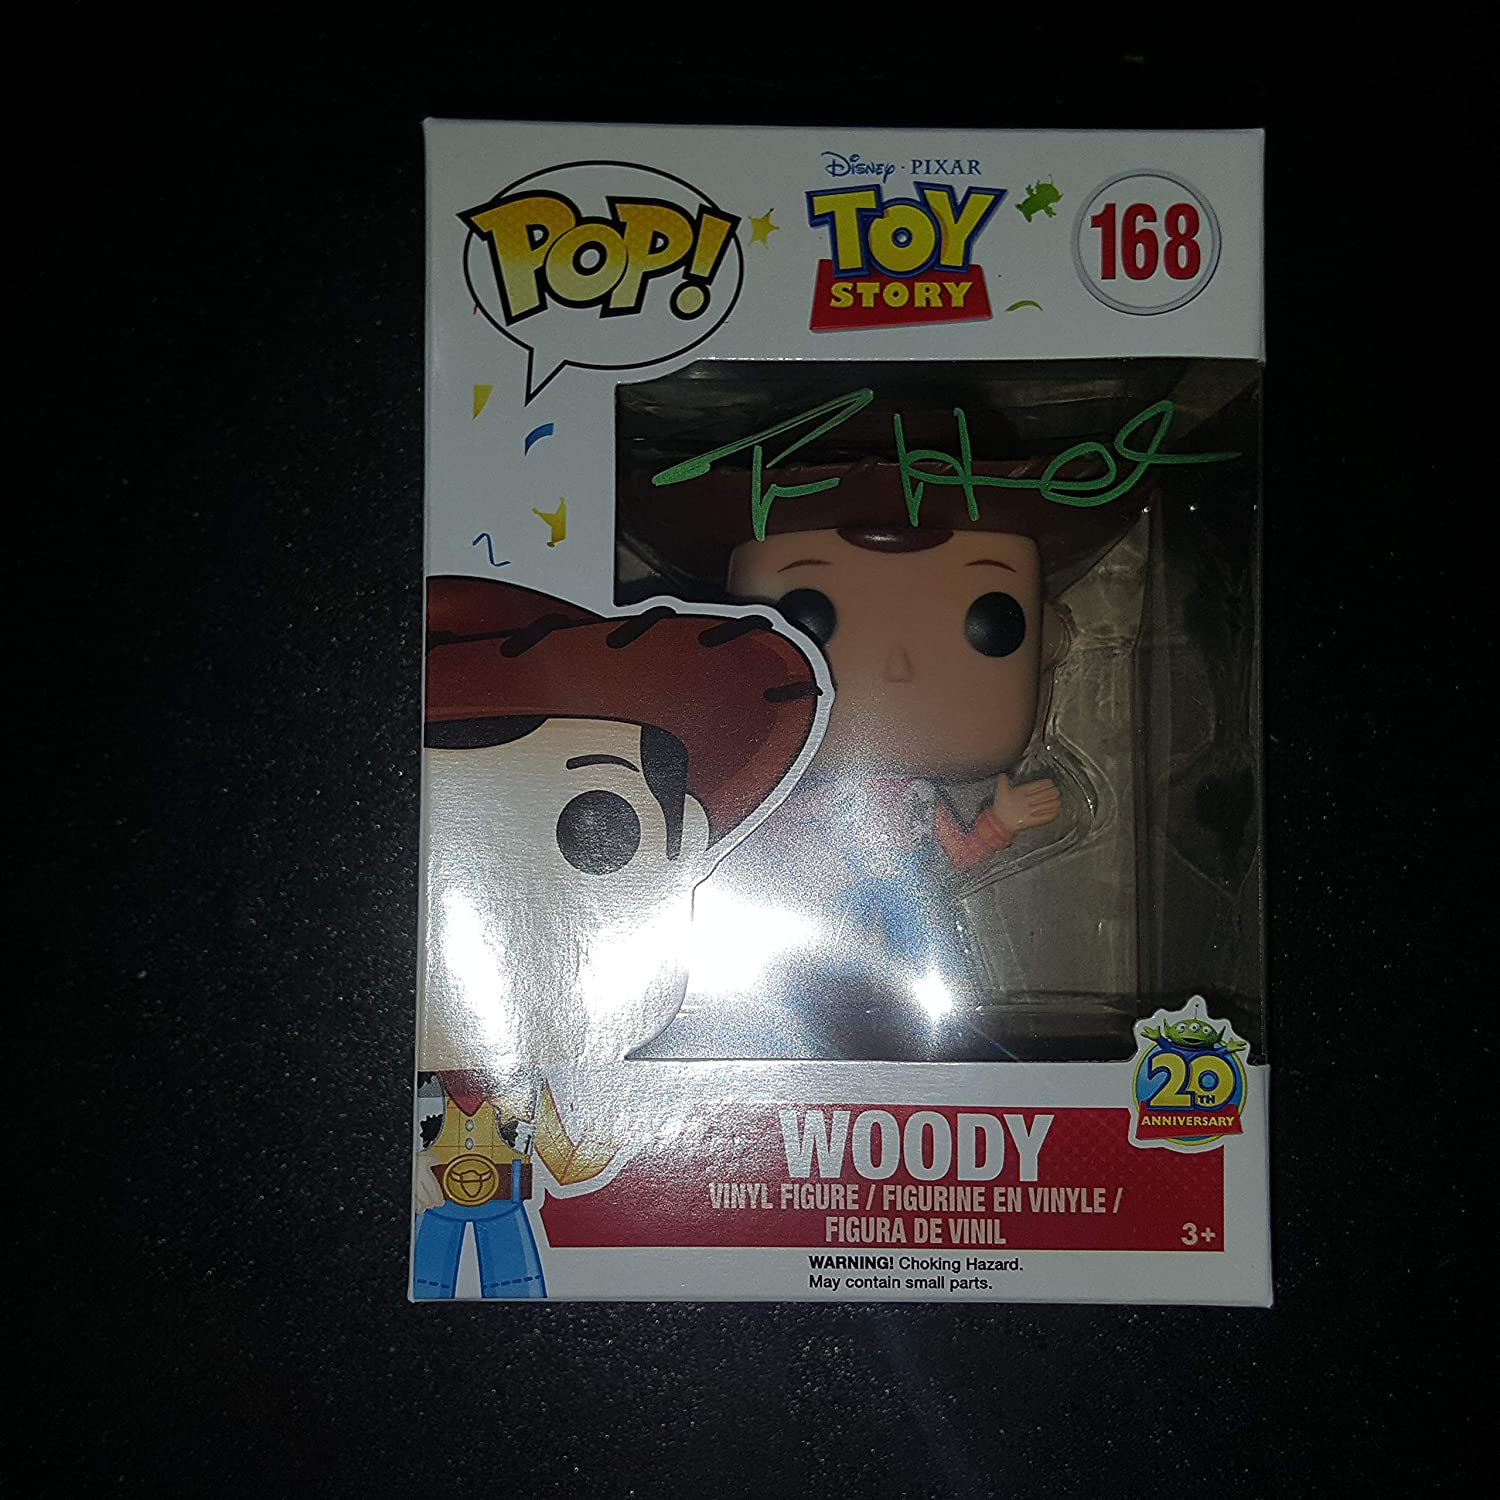 TOM HANKS - Autographed Signed WOODY FUNKO POP 168 figure - Toy Story 3 COA proof